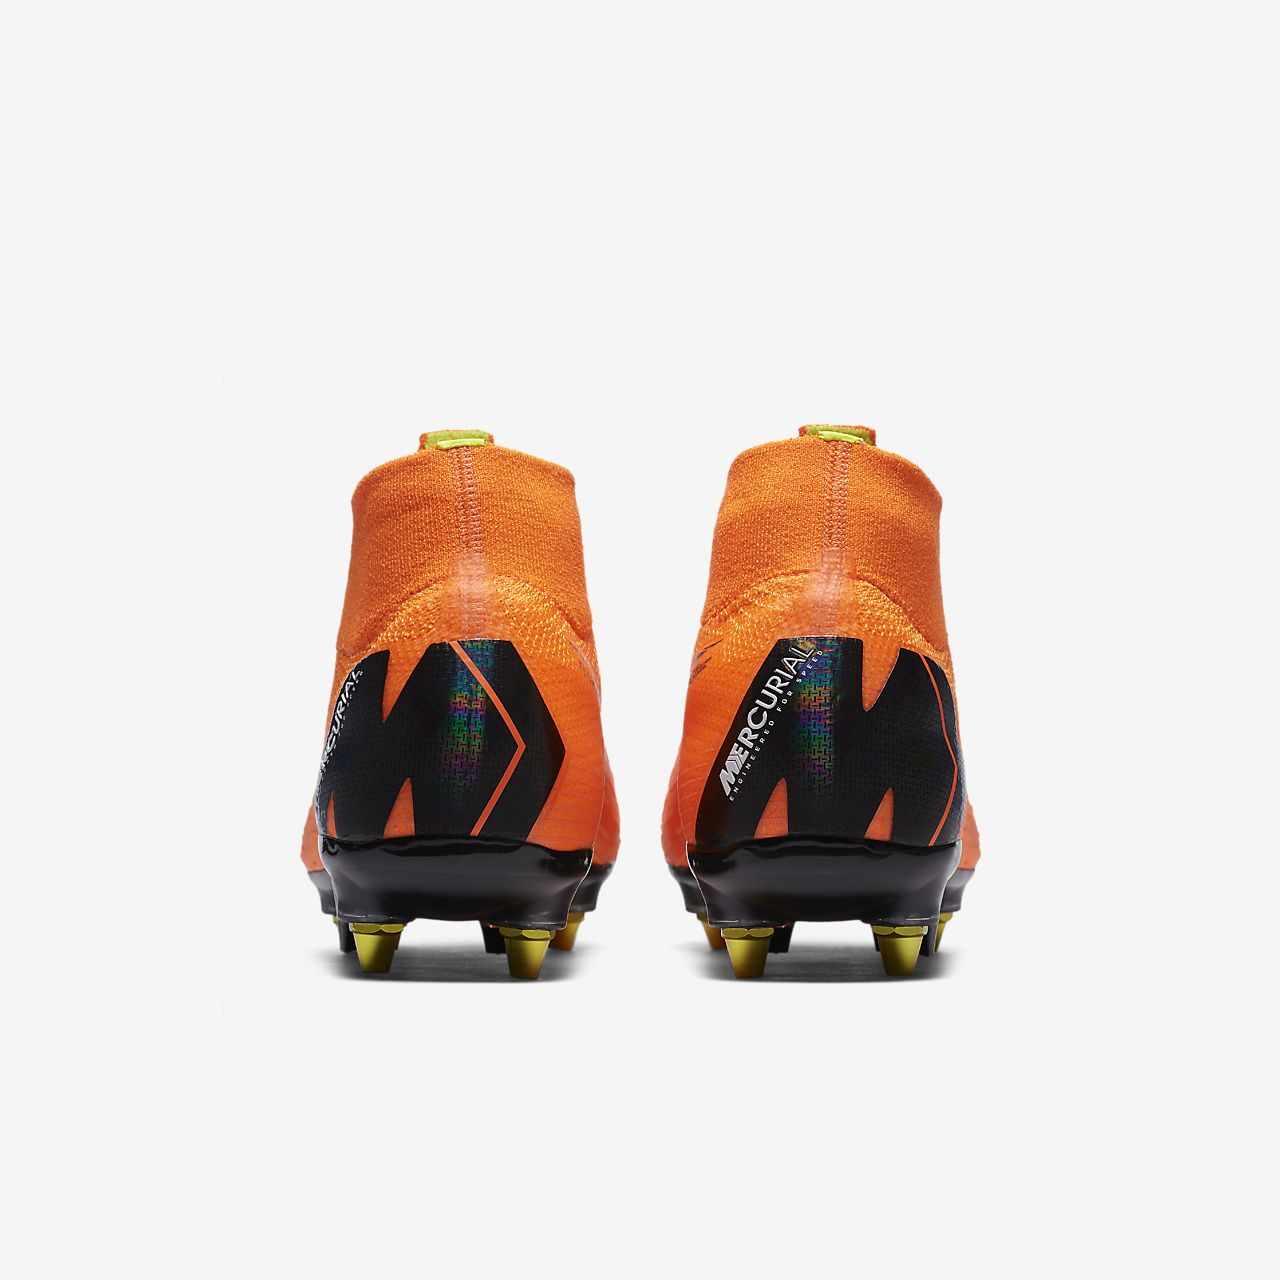 6f93252cc9 Nike Nike Mercurial Superfly 360 Elite SG-PRO Anti-Clog Soft-Ground ...